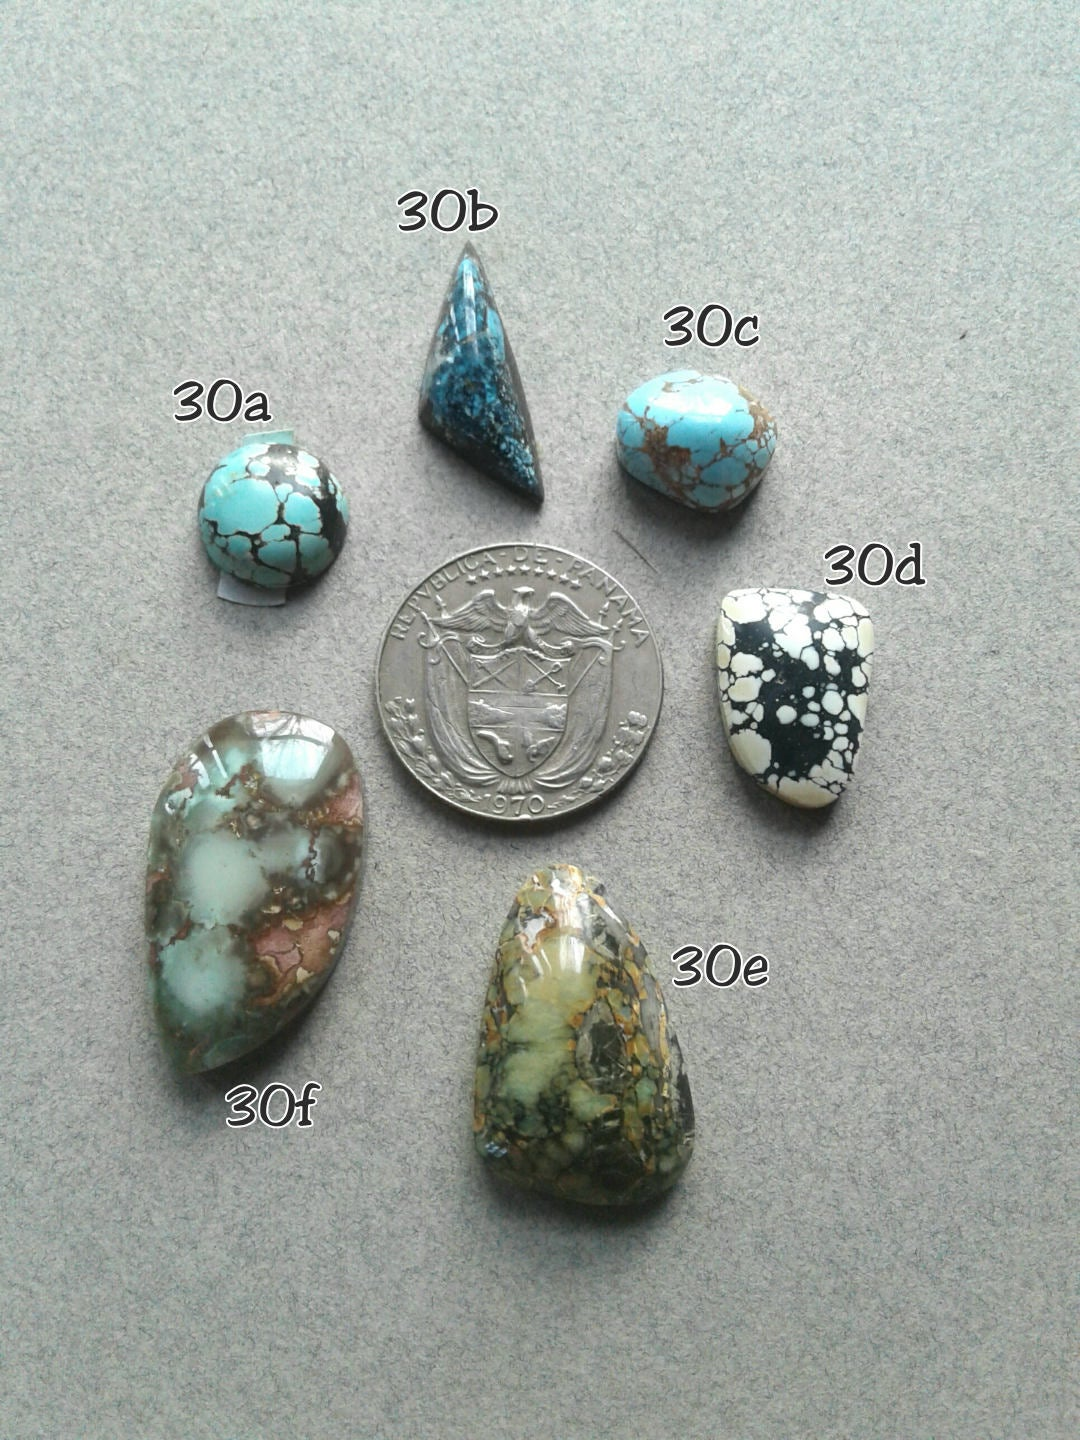 30c. Red River, New Lander, Hubei, Blue Moon, Cassiopeia, all natural turquoise - Red Dirt Diva